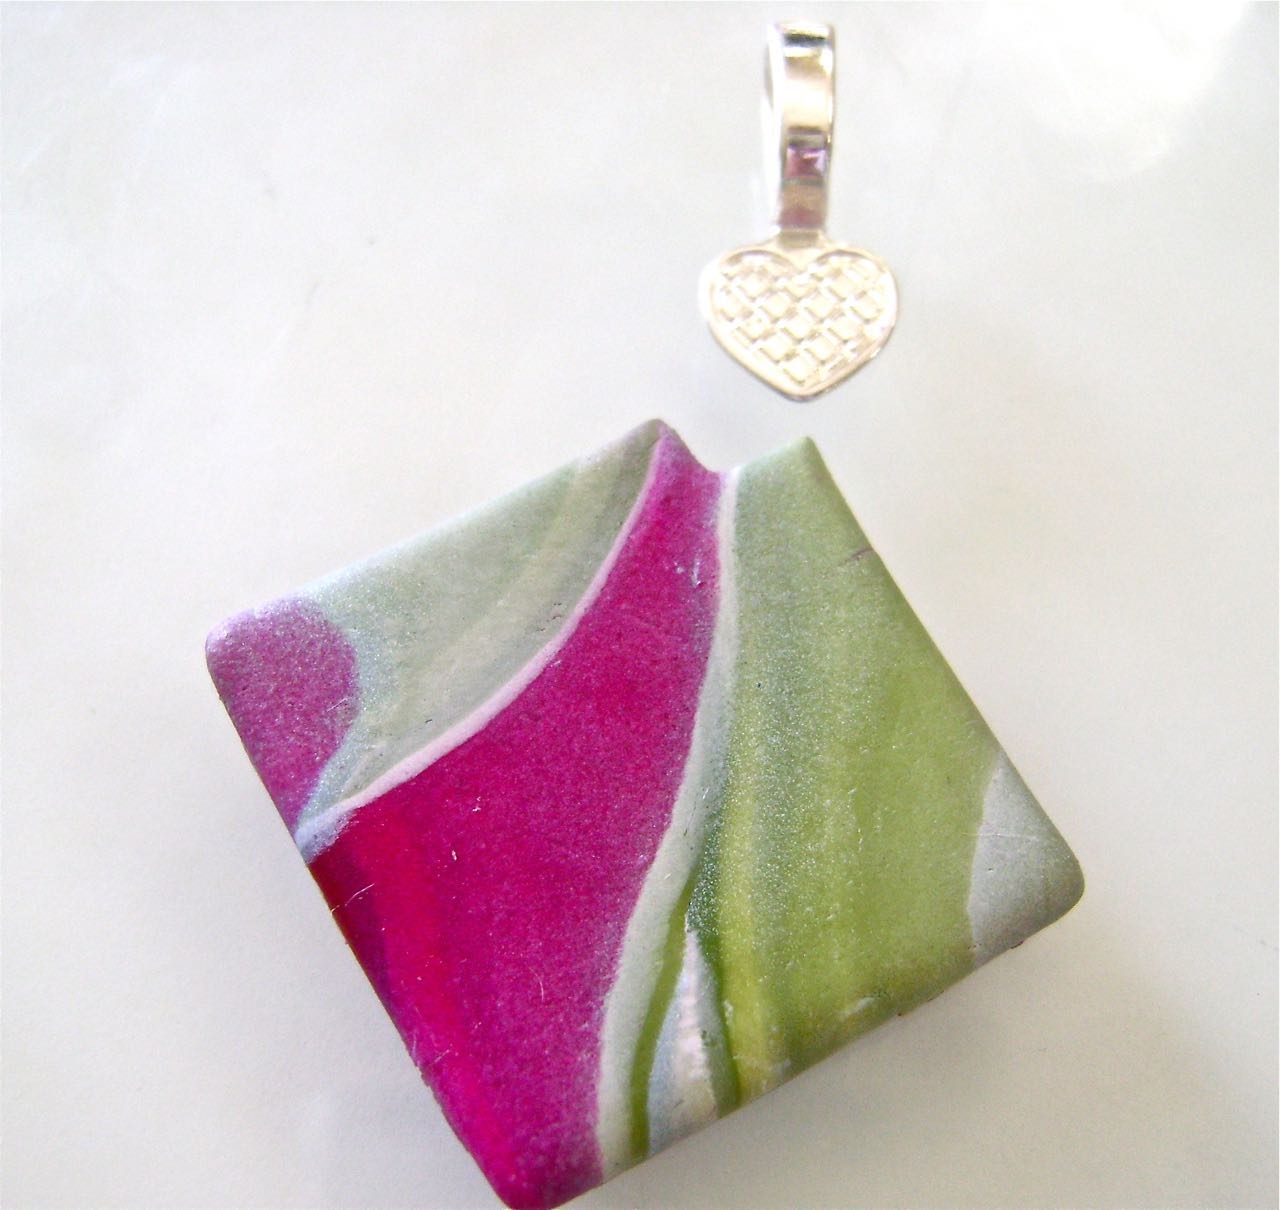 step 10 - Cut a notch from one corner of the square so it will hug the pendant bail later. Bake the beads and pendant in a 275 degree oven on a parchment lined flat baking sheet. Allow to cool completely before handling.